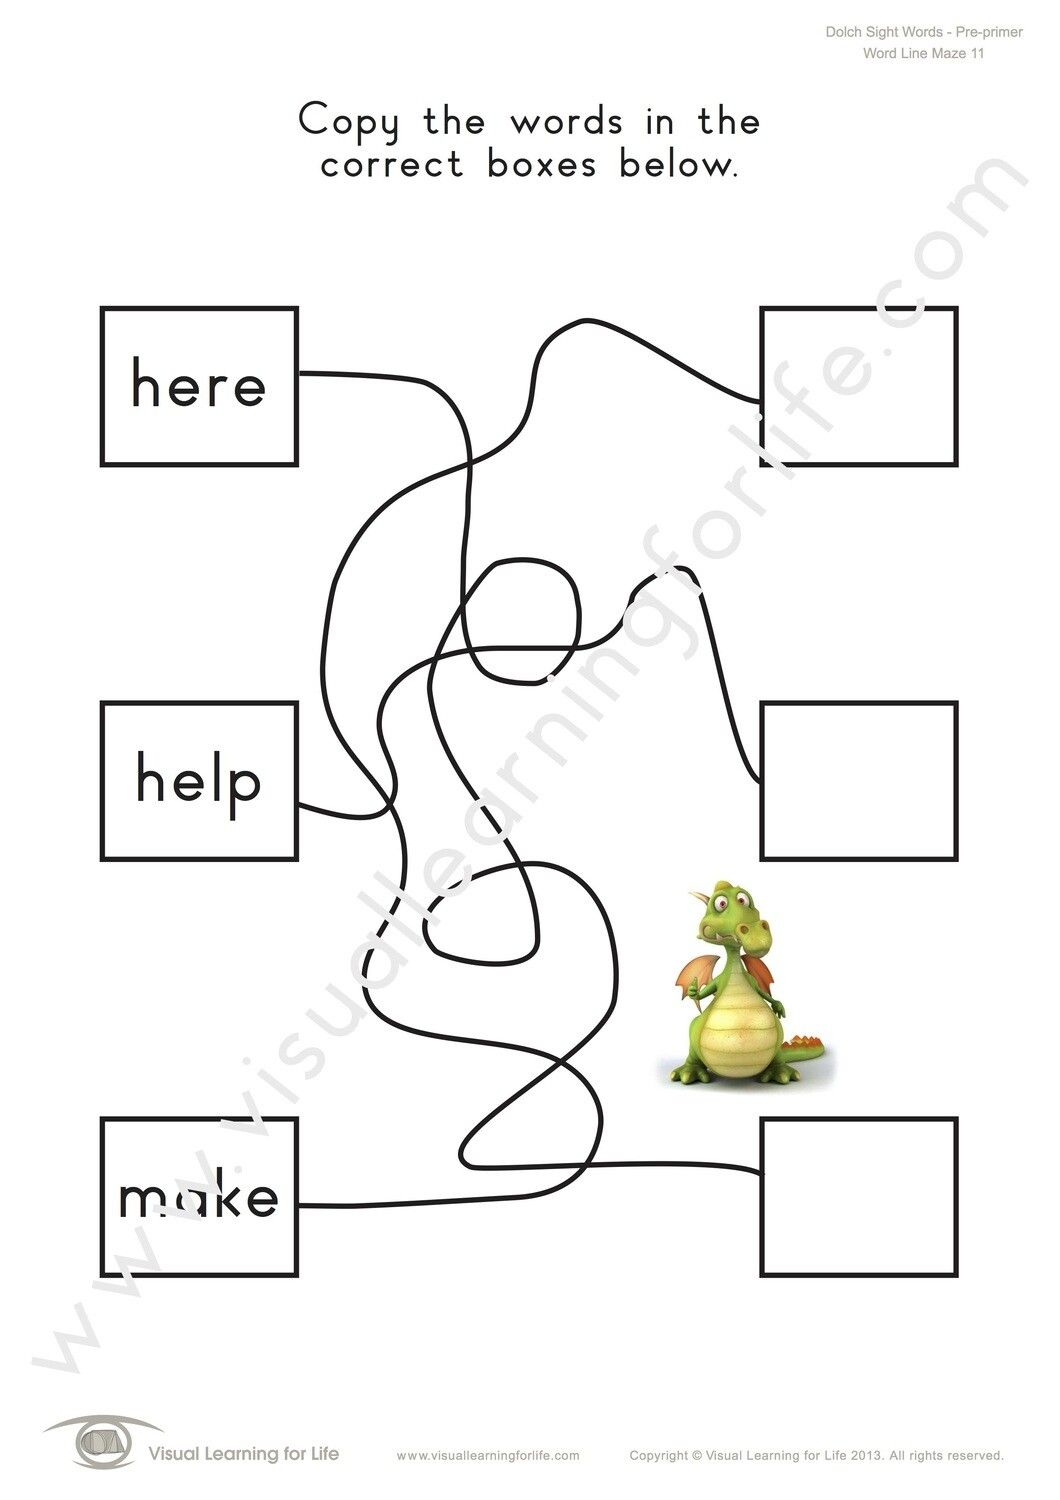 In The Word Line Maze Worksheets The Student Must